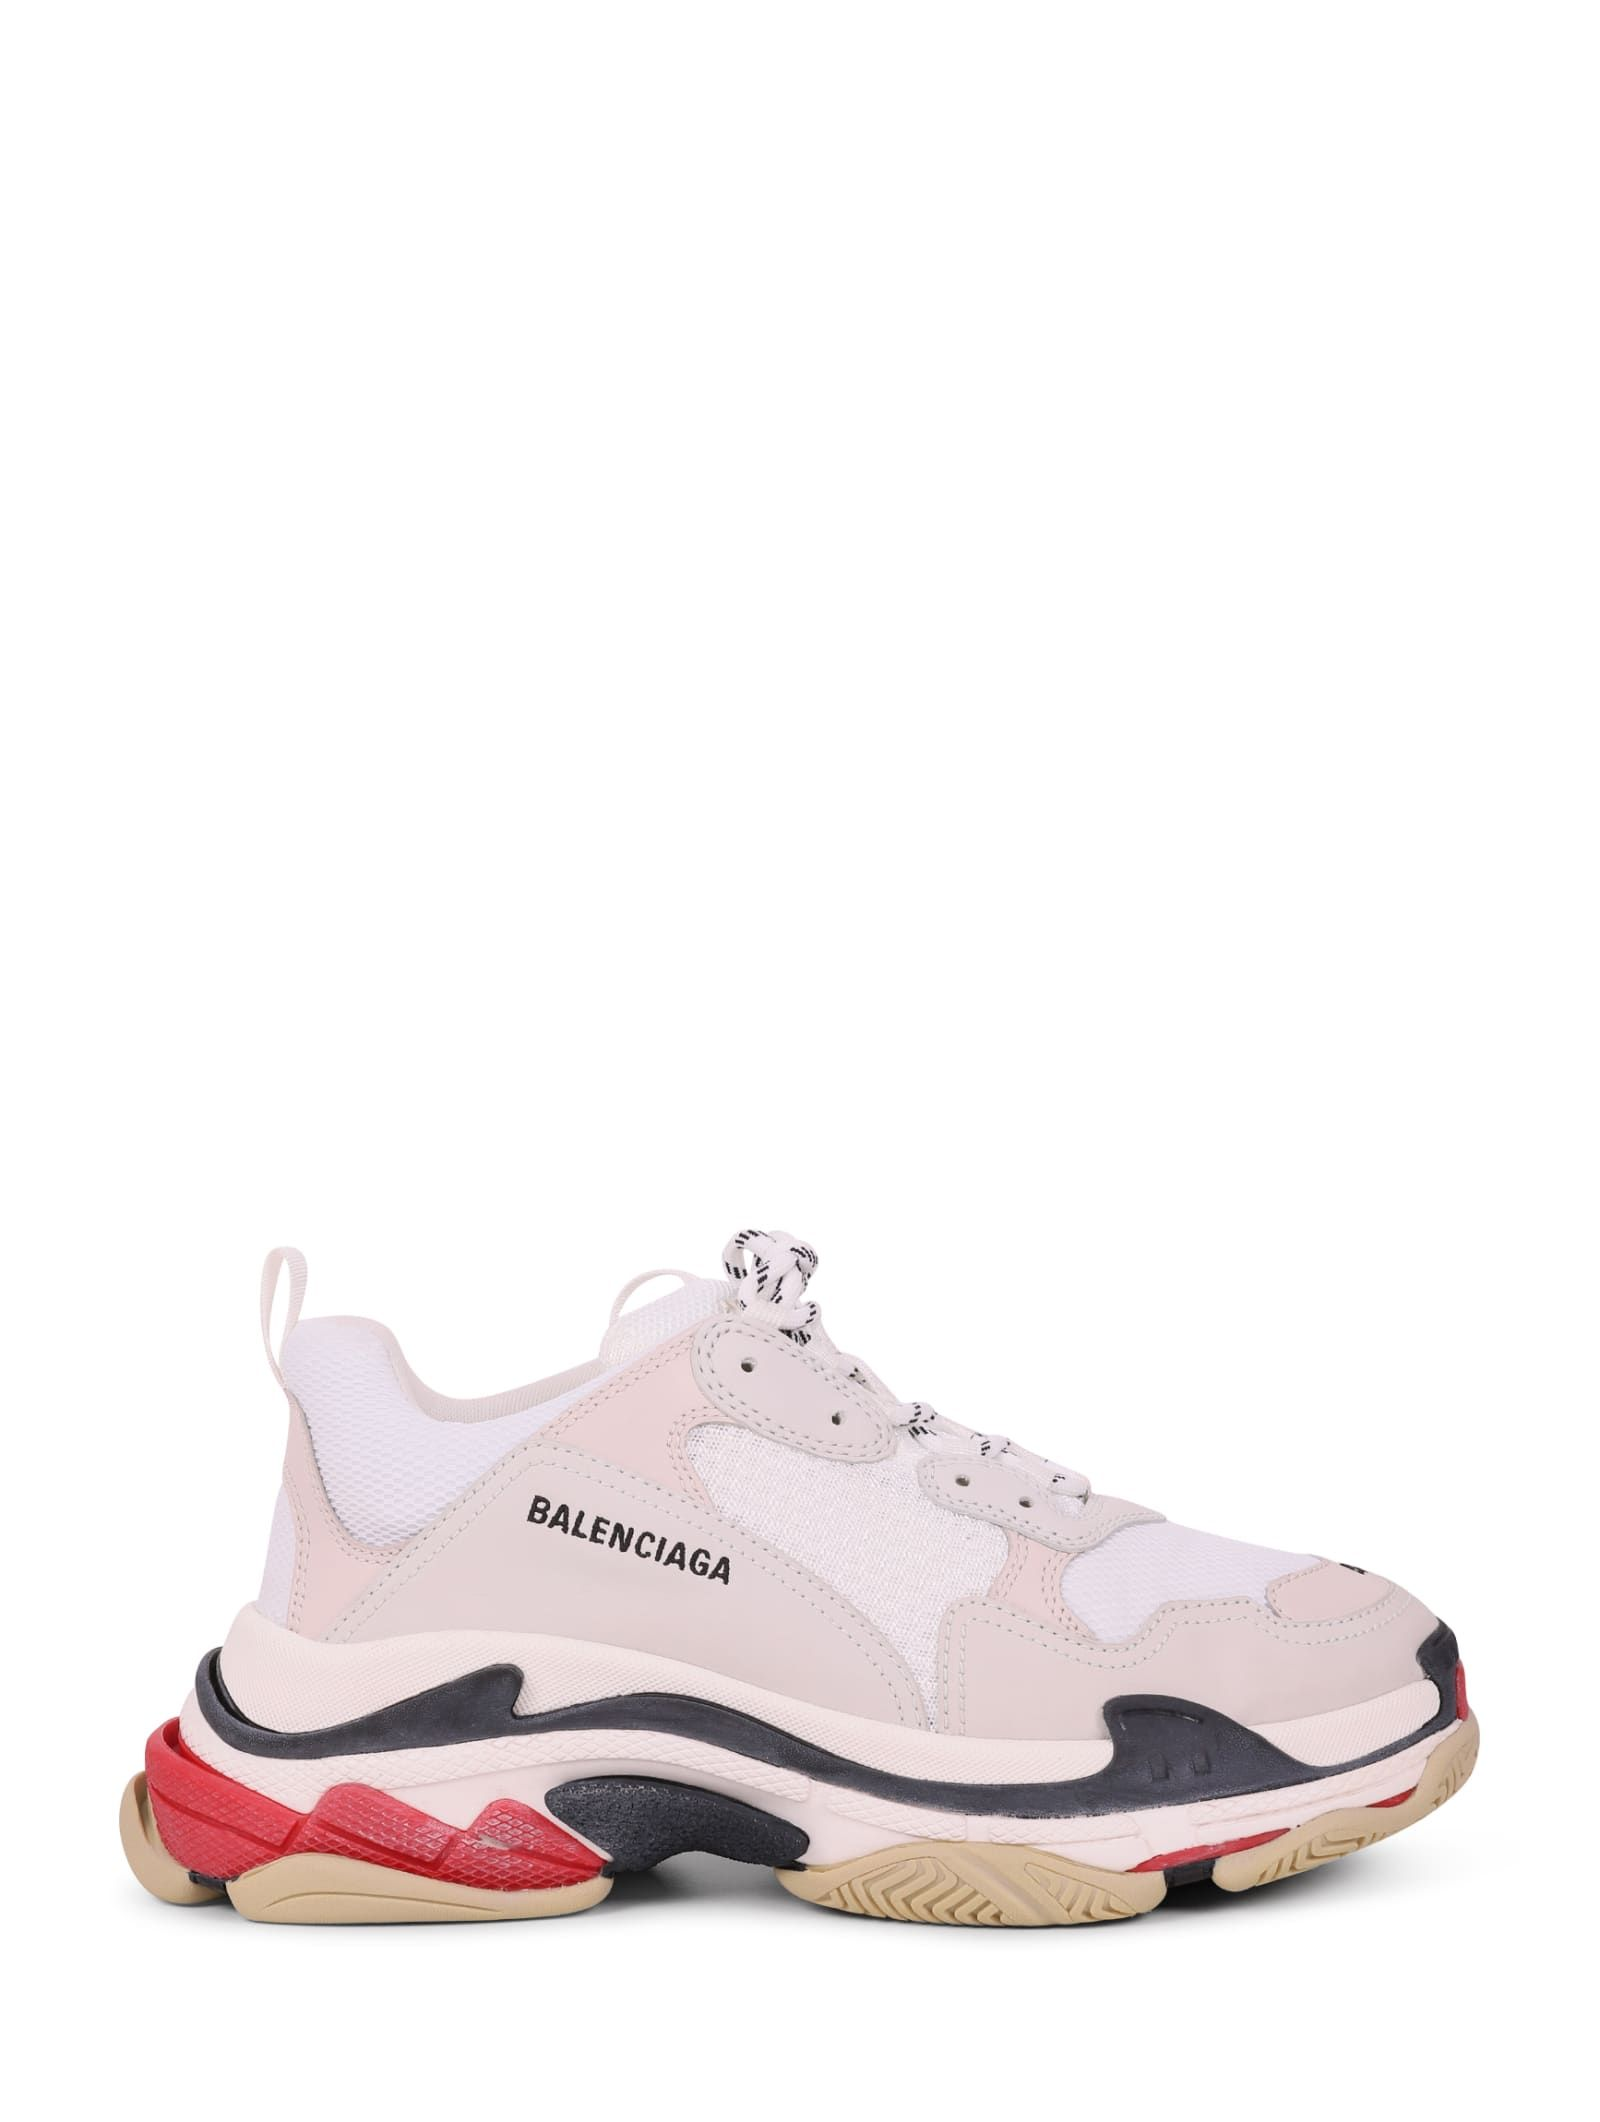 Balenciaga s Hiking inspired TRACK Sneaker Now Comes in